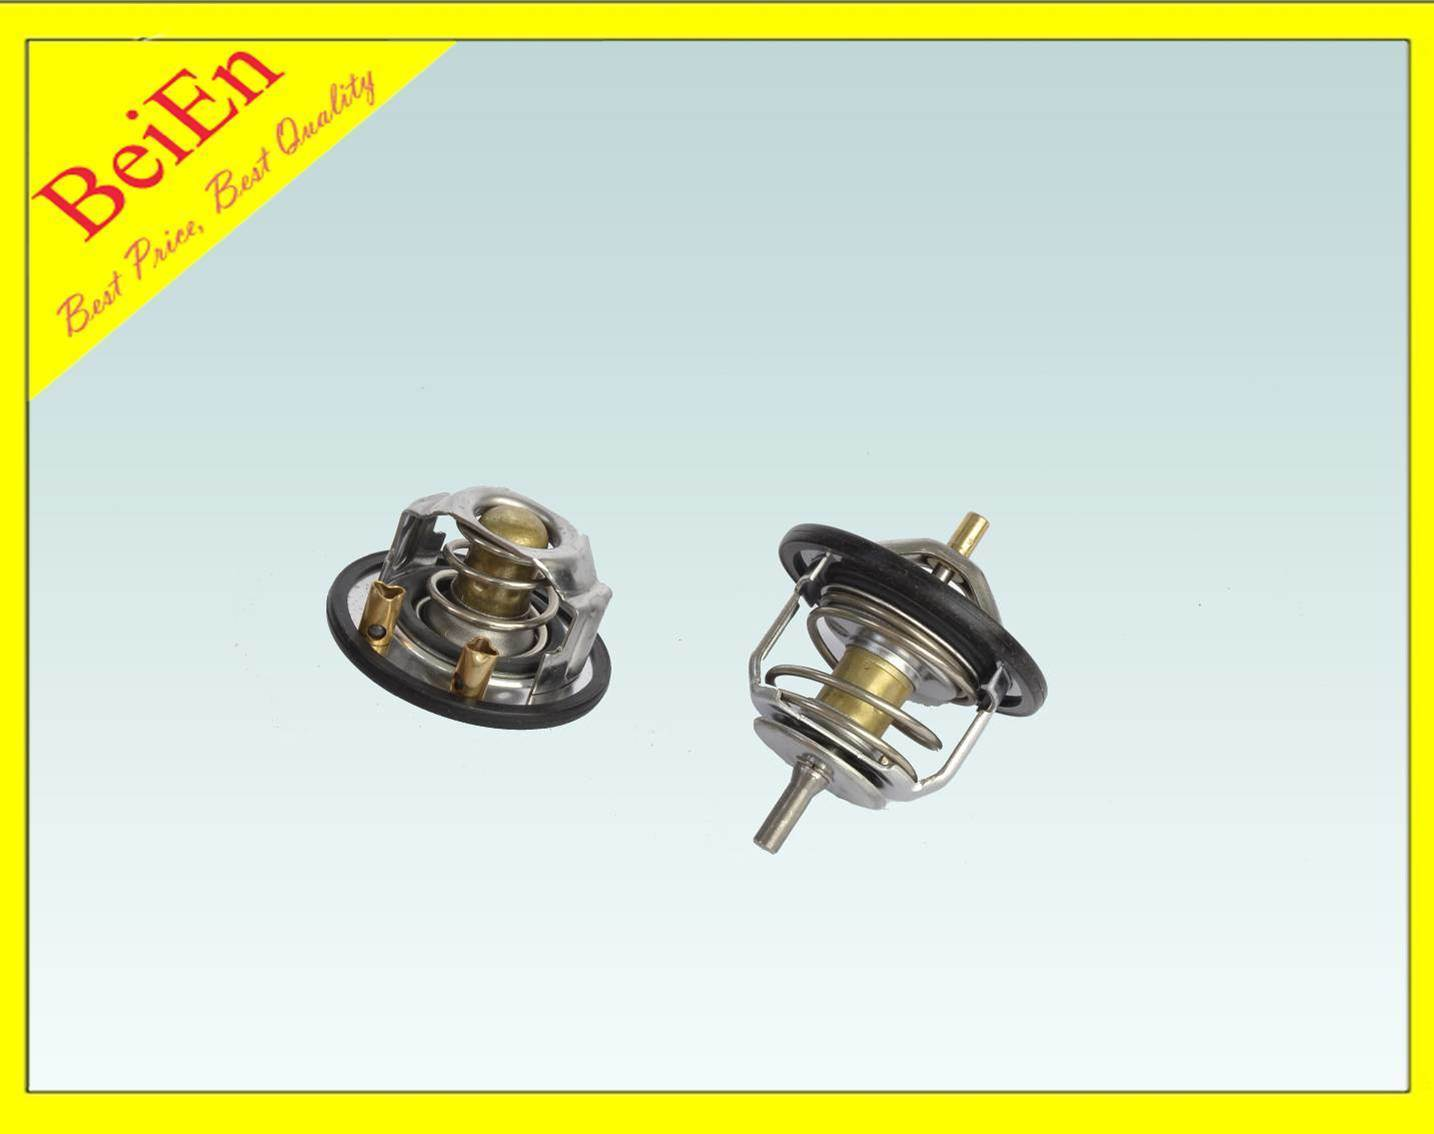 Genuine Thermostat for Isuzu Excavator Engine 4bd1t/G1t Made in Japan /China 5-13770030-2